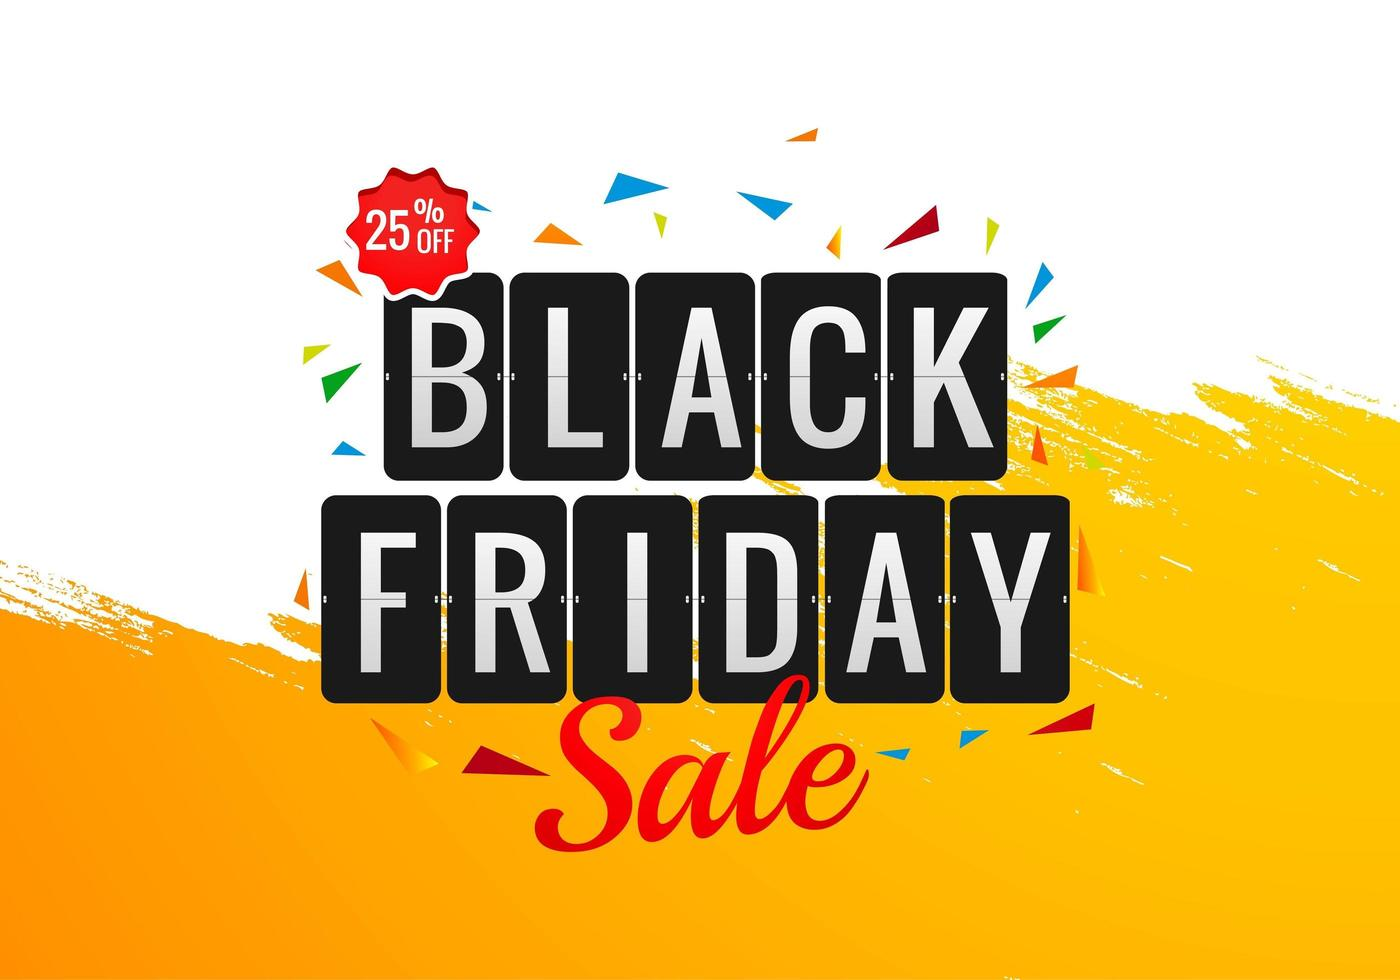 Black Friday Holiday Sale Banner Template Design Download Free Vectors Clipart Graphics Vector Art